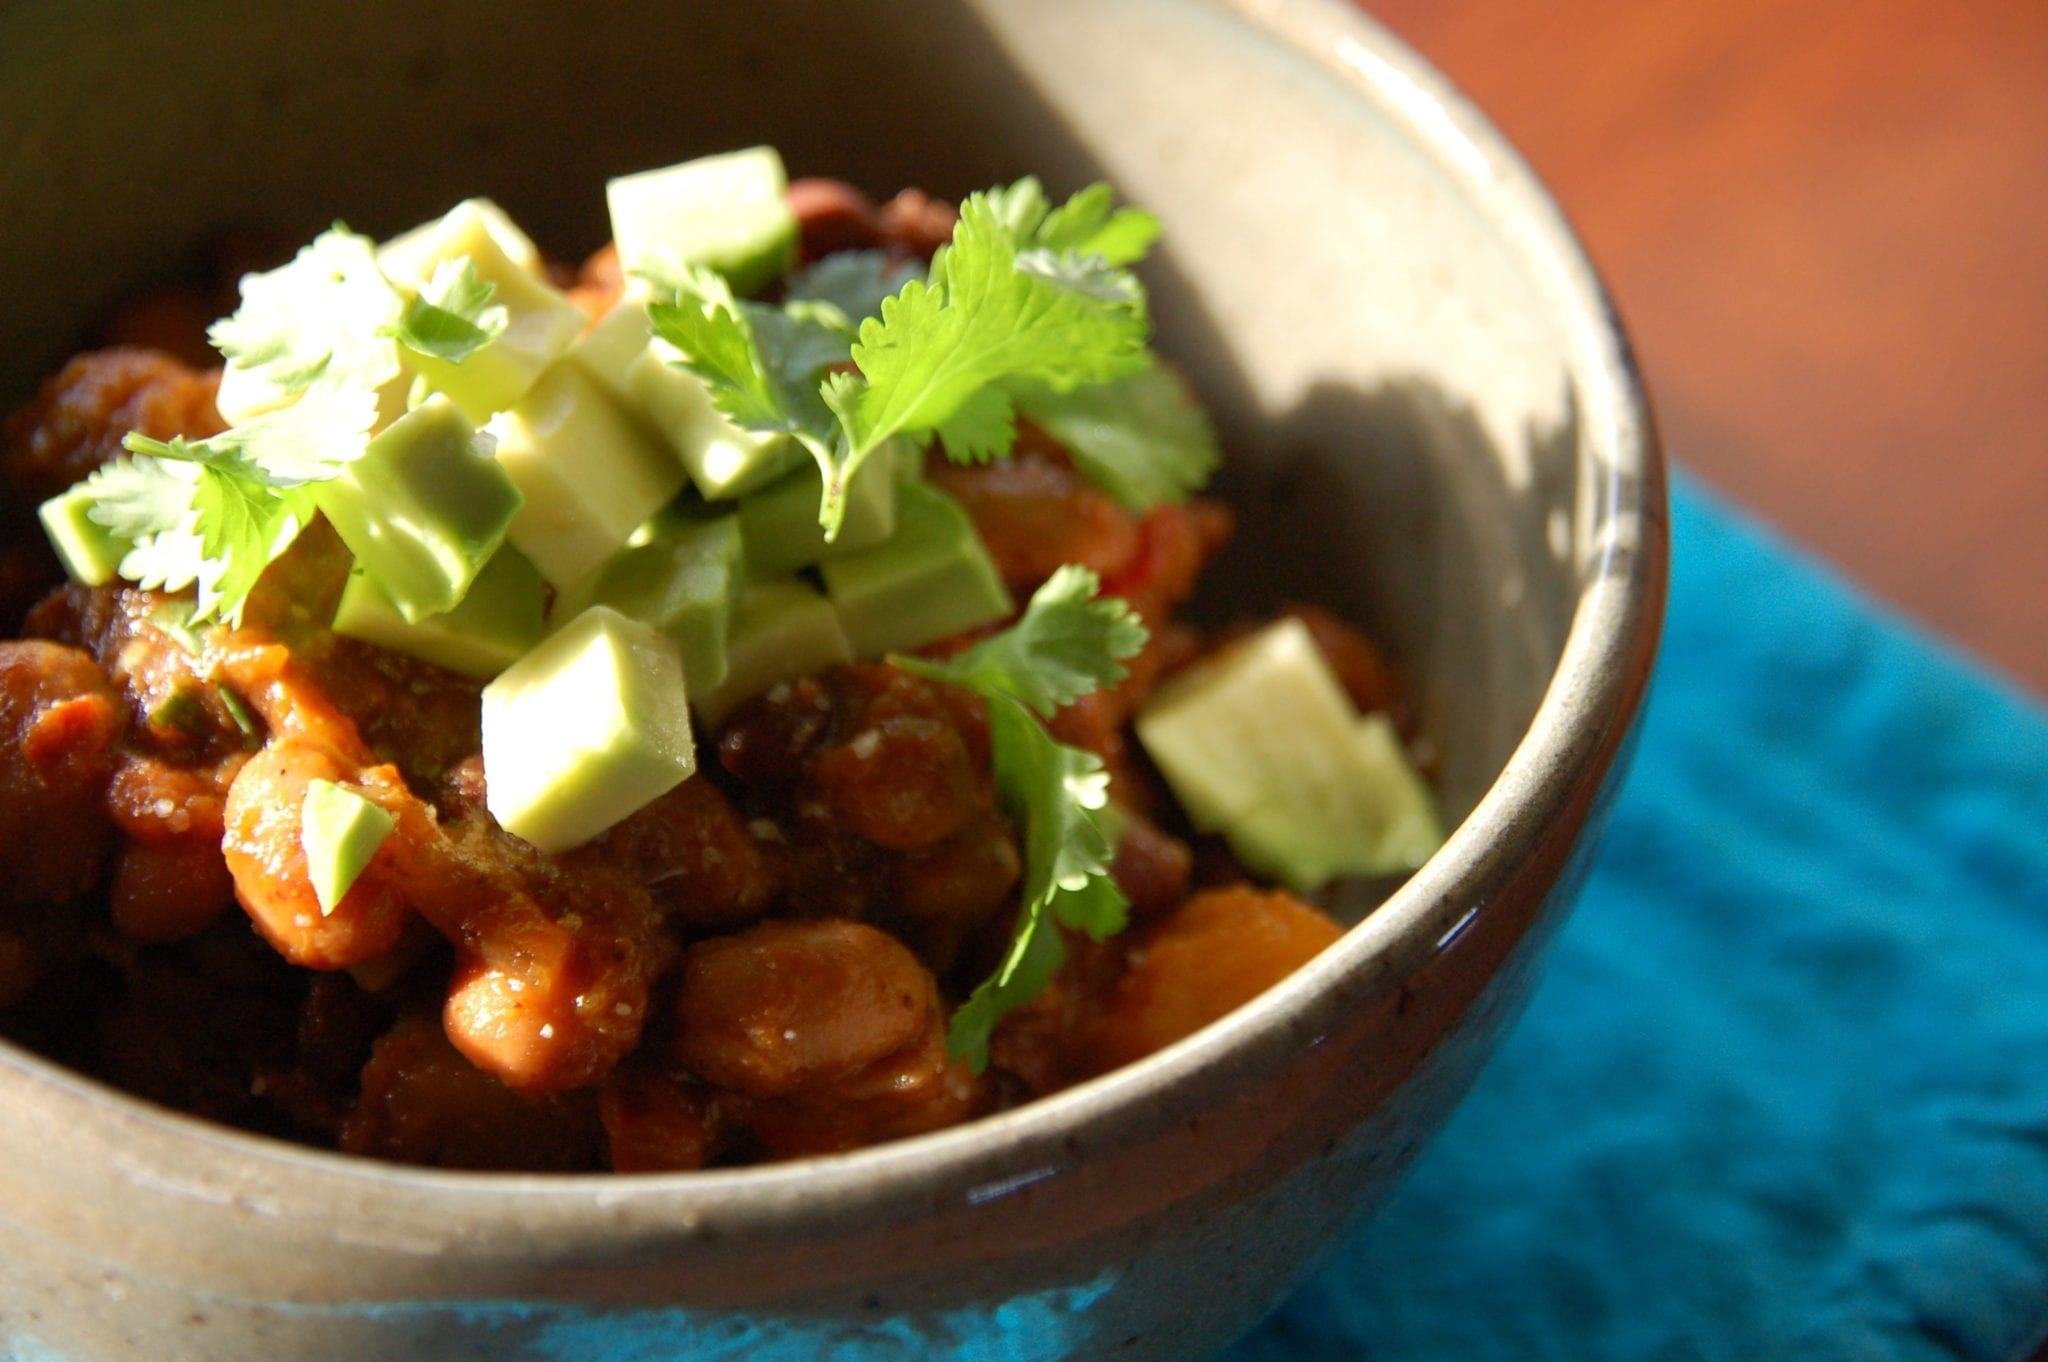 Re-claim Chipotle & Splurge: Take Your Winter Food Power Back (Recipes Included!)